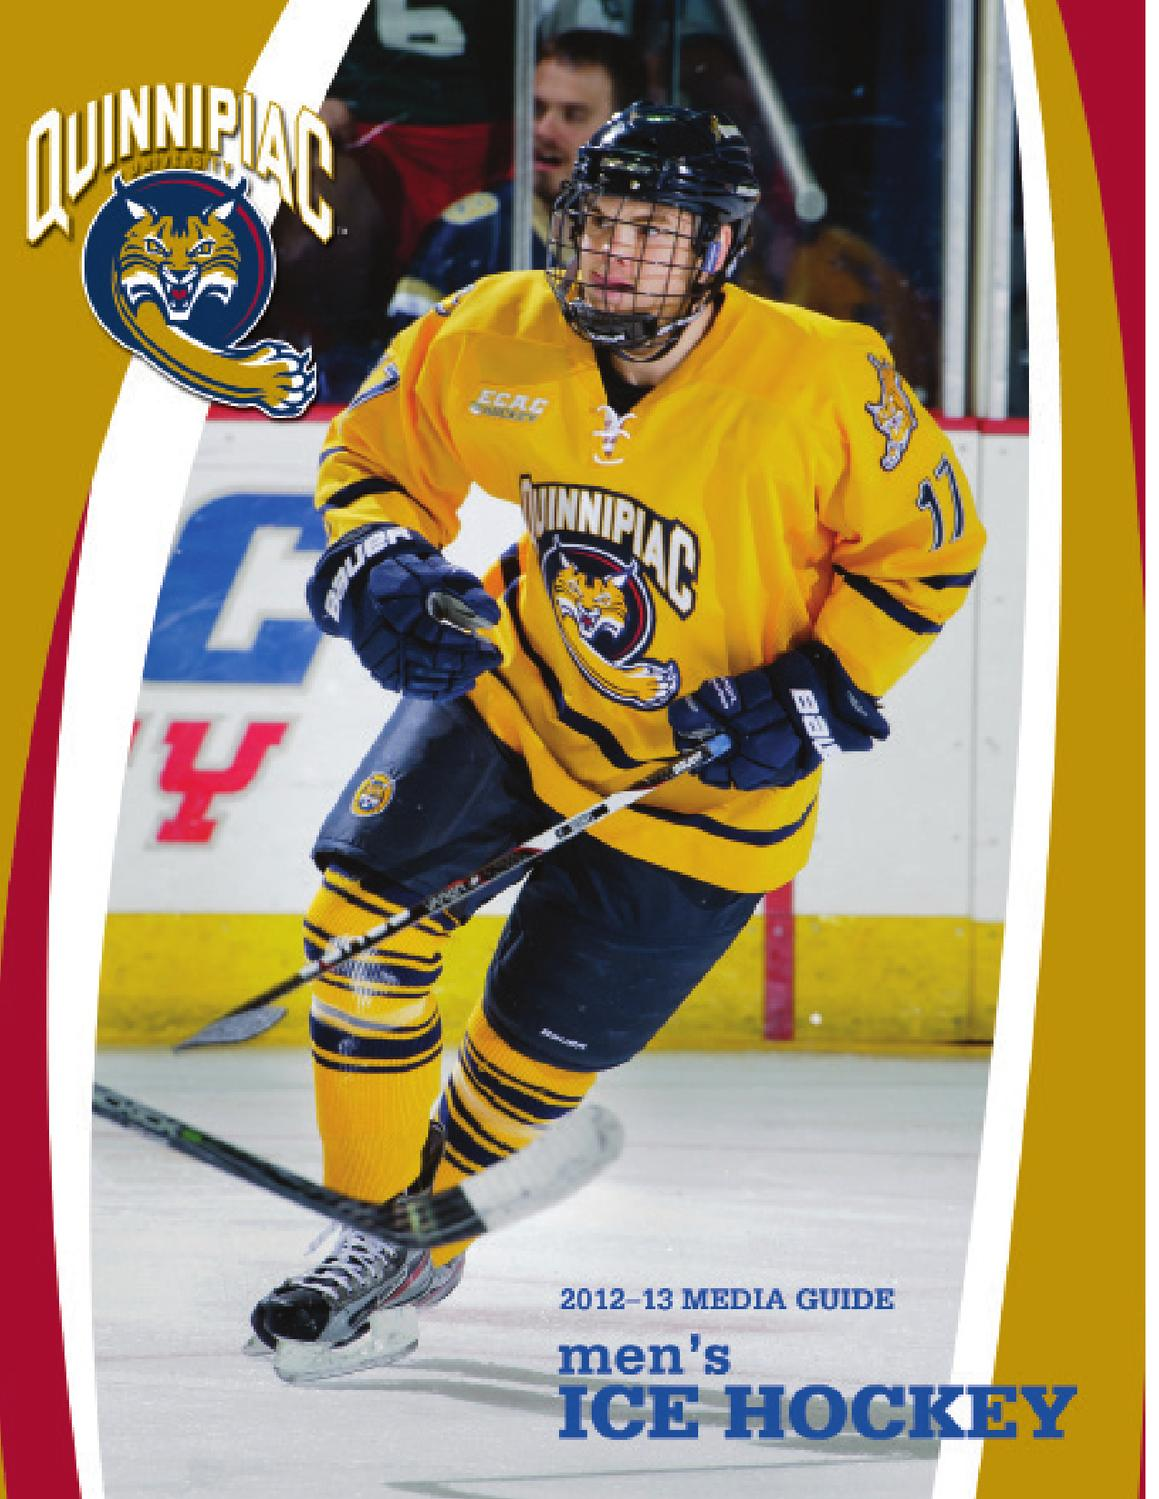 2012-13 QU Men's Ice Hockey Media Guide by Jack McDonald ...